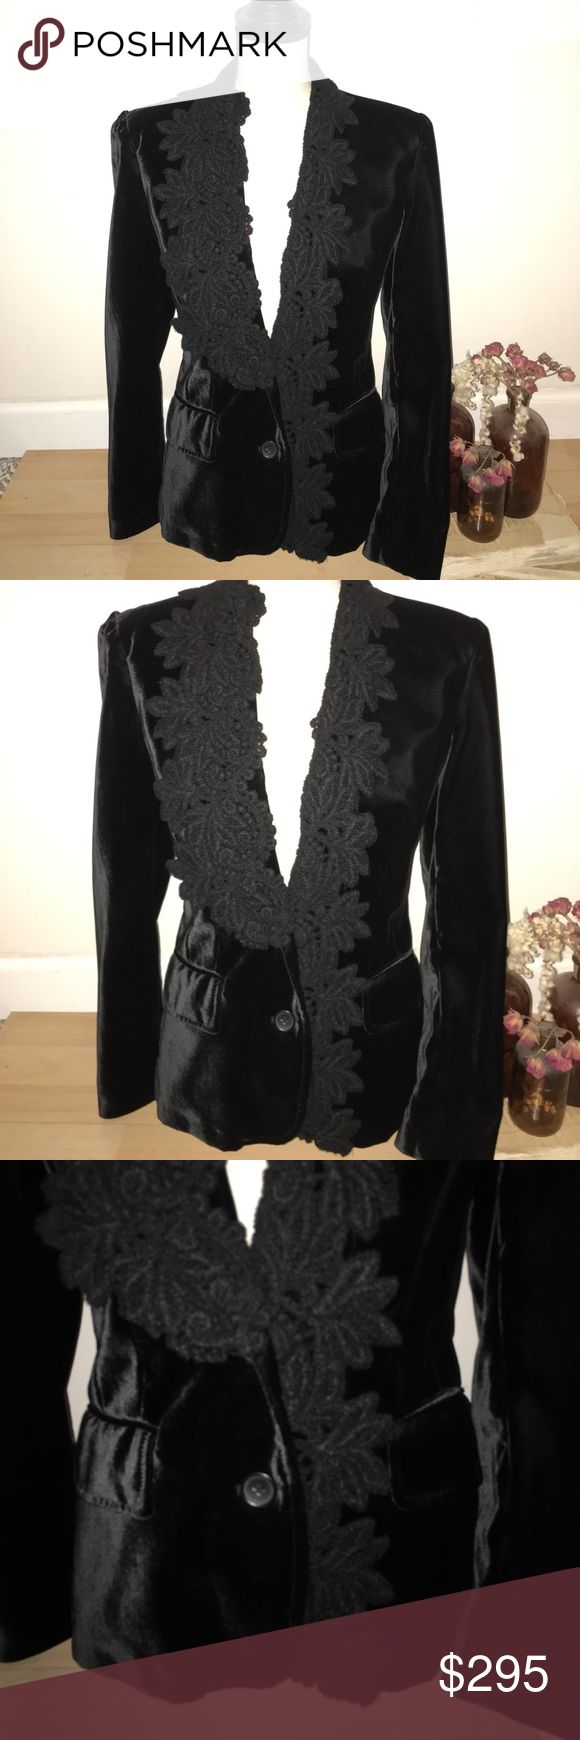 D&G Blazer Authentic and in fantastic condition. D&G black velvet, single breasted, fitted blazer. Has pockets on front and amazing knit design around collar and down the front. This blazer is stunning. D&G Jackets & Coats Blazers